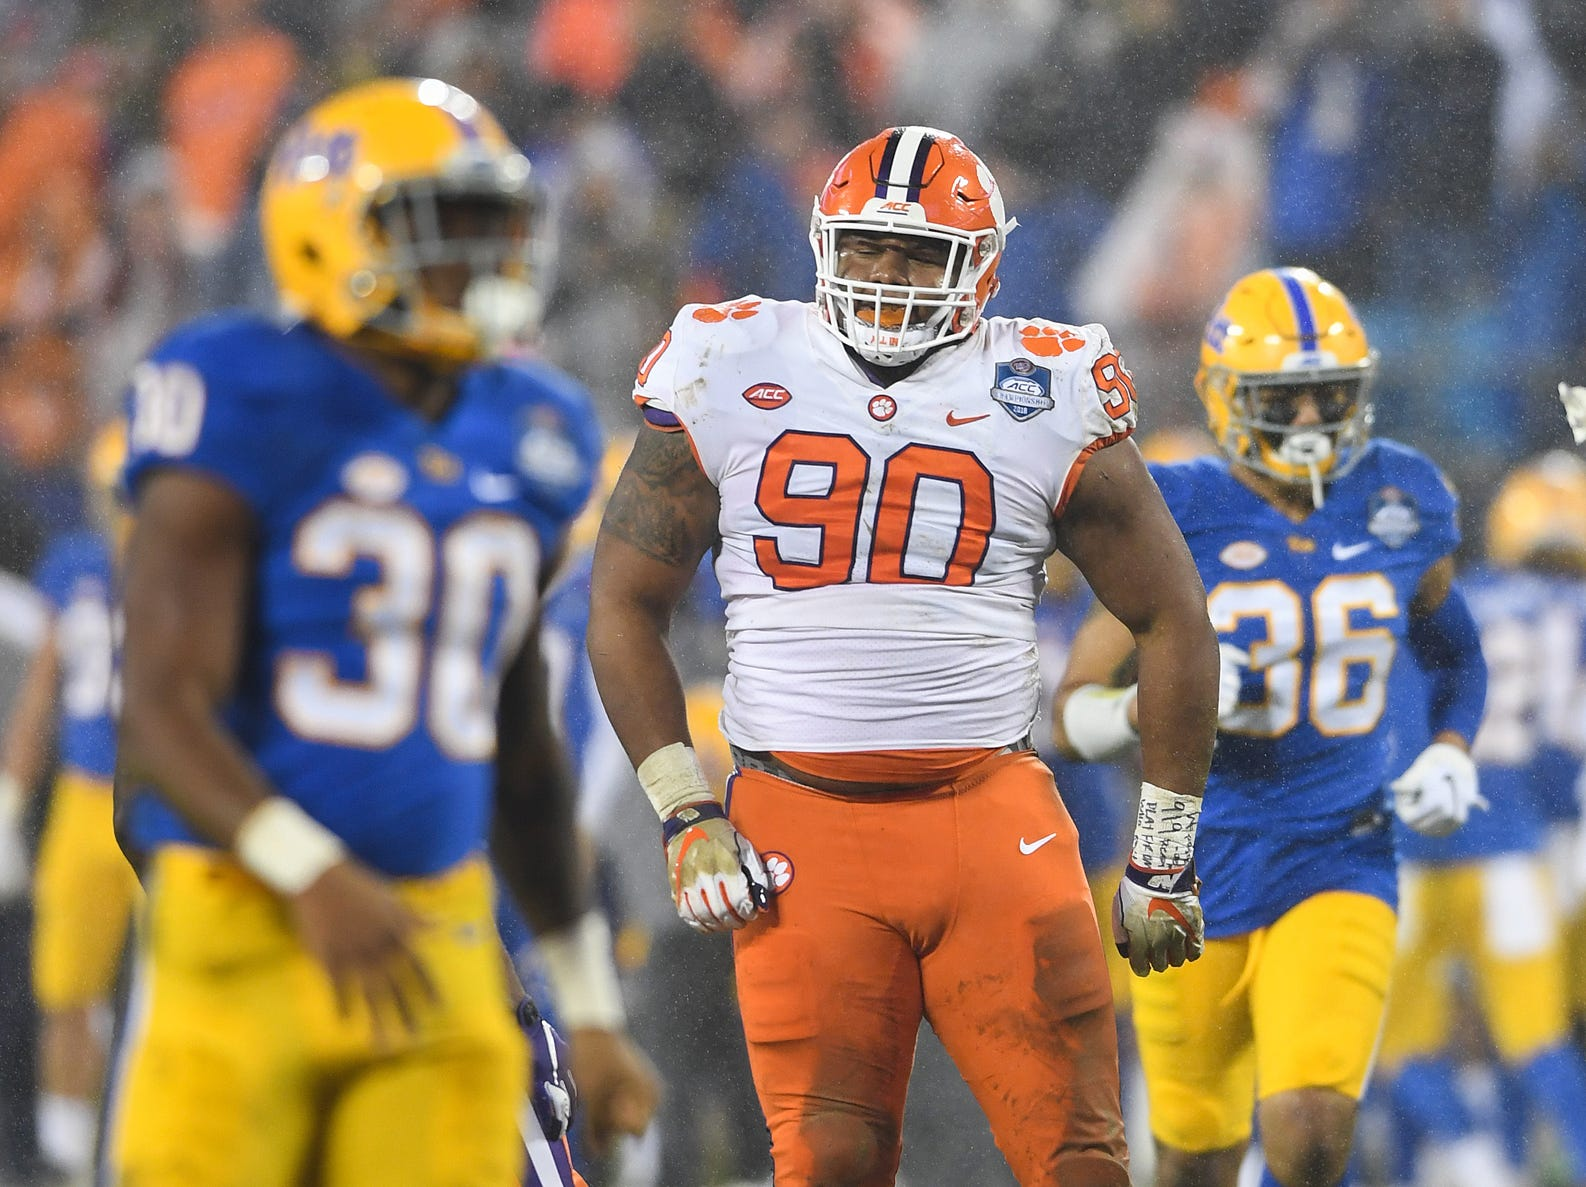 Clemson defensive lineman Dexter Lawrence (90) plays against Pittsburgh during the 1st quarter of the Dr. Pepper ACC Championship at Bank of America Stadium in Charlotte, N.C. Saturday, December 1, 2018.